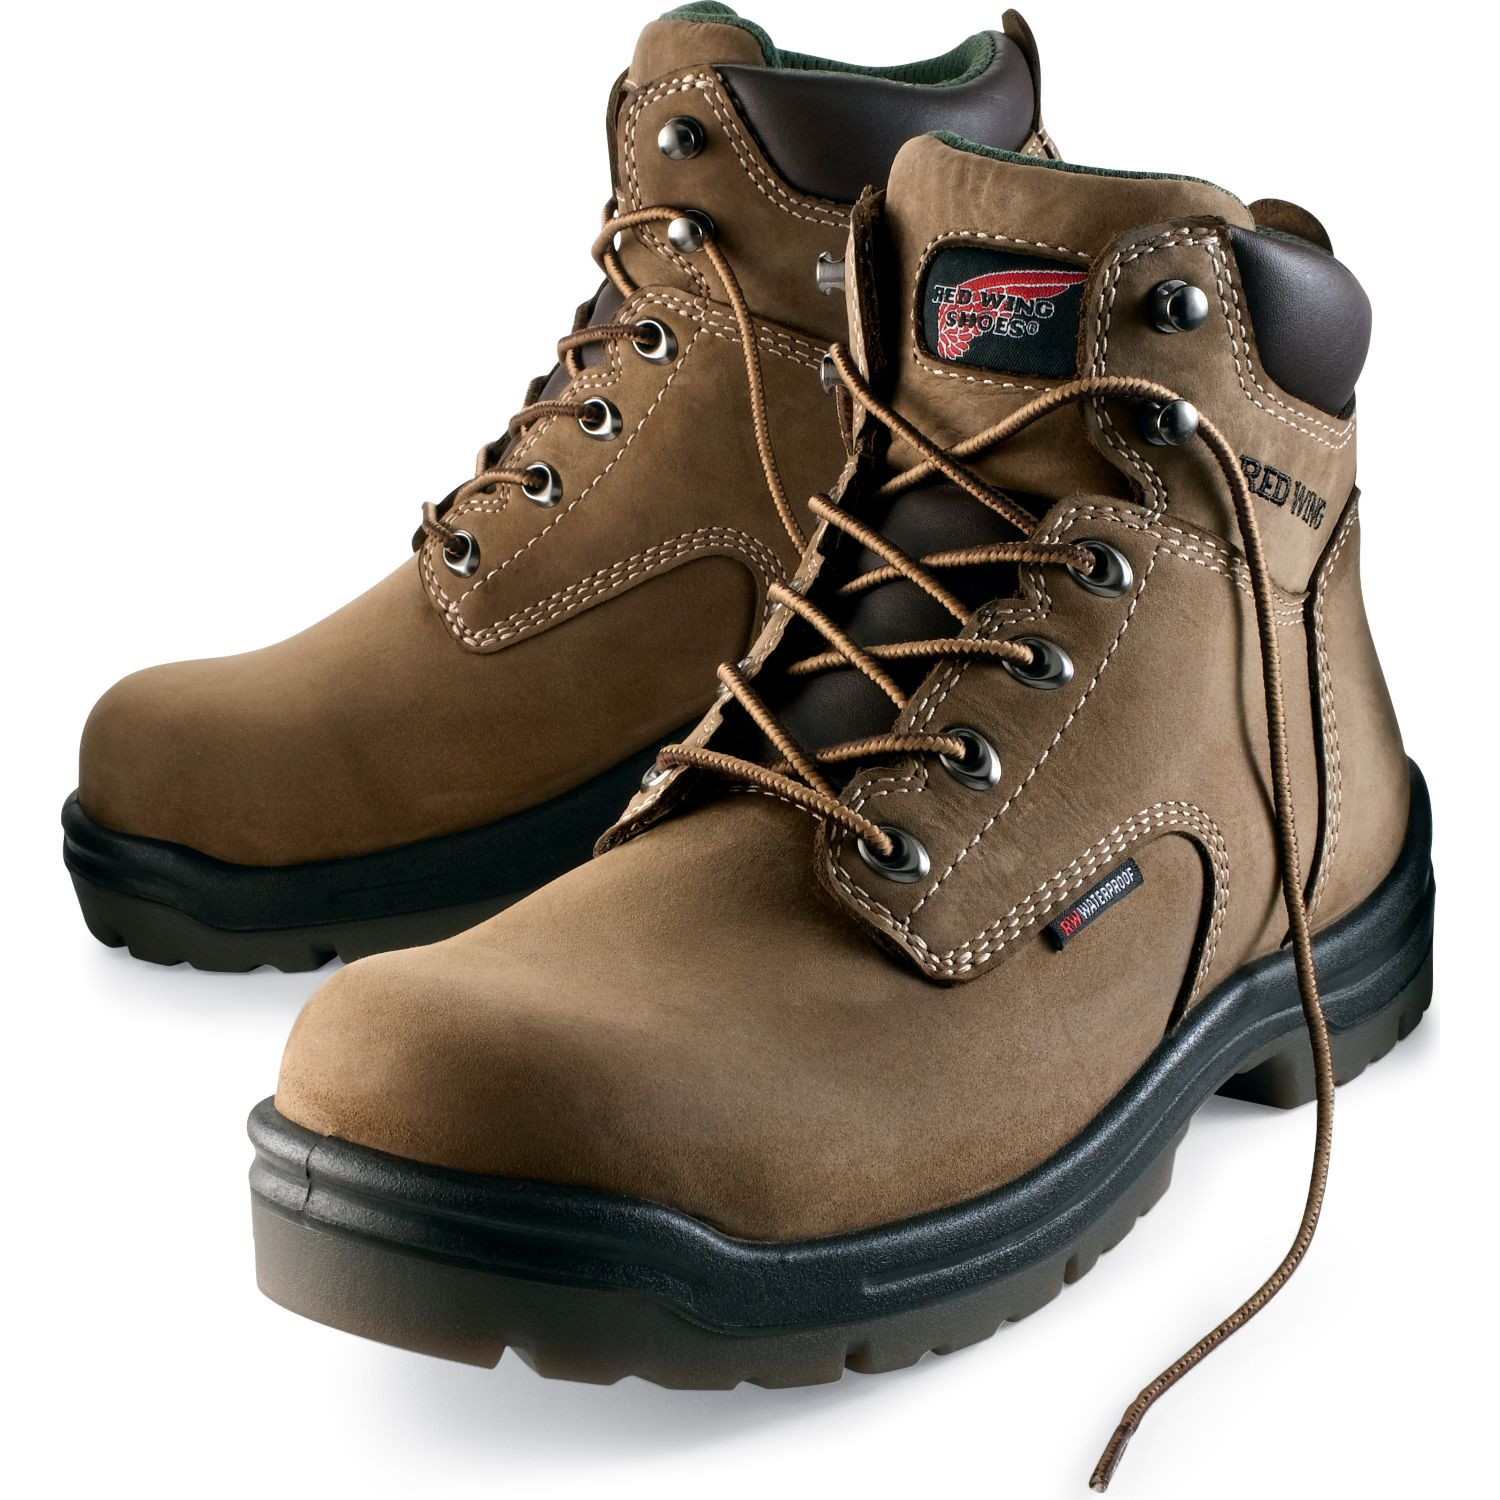 Mens Red Wing Boots gdBB5IKU